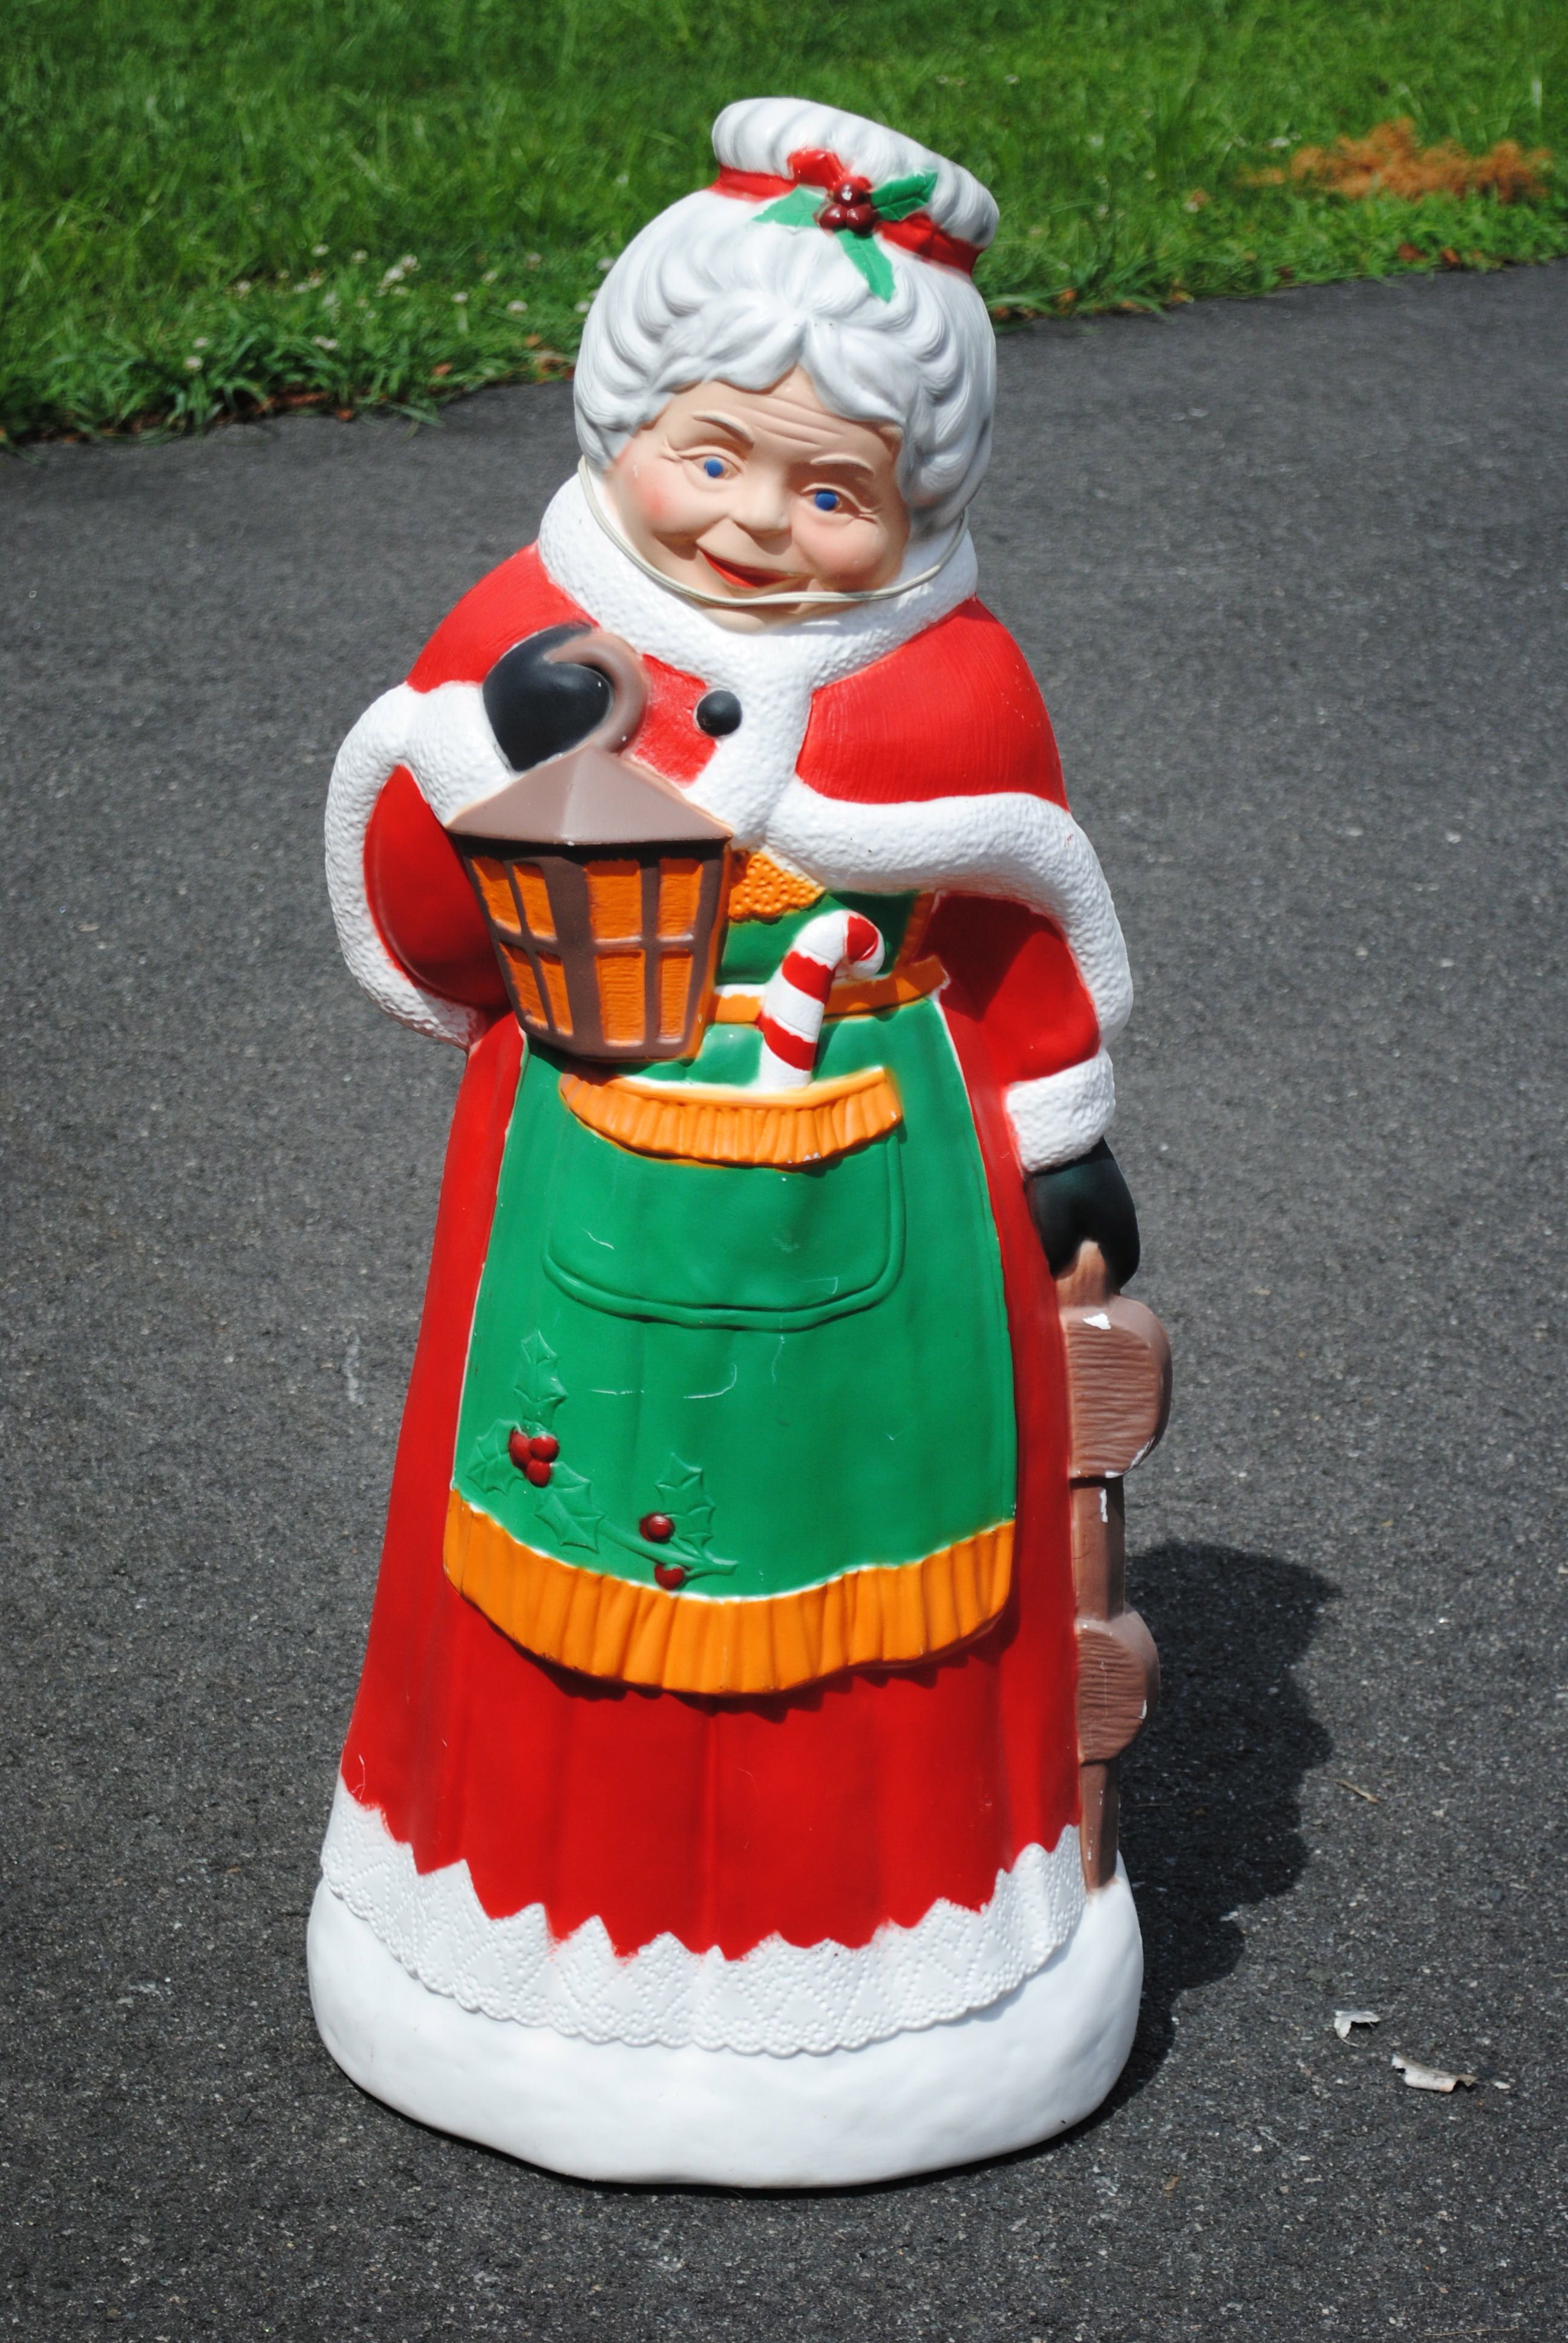 tpi canada blowmold mrs claus on craigslist central nj decorating with christmas lights outdoor christmas - Craigslist Outdoor Christmas Decorations